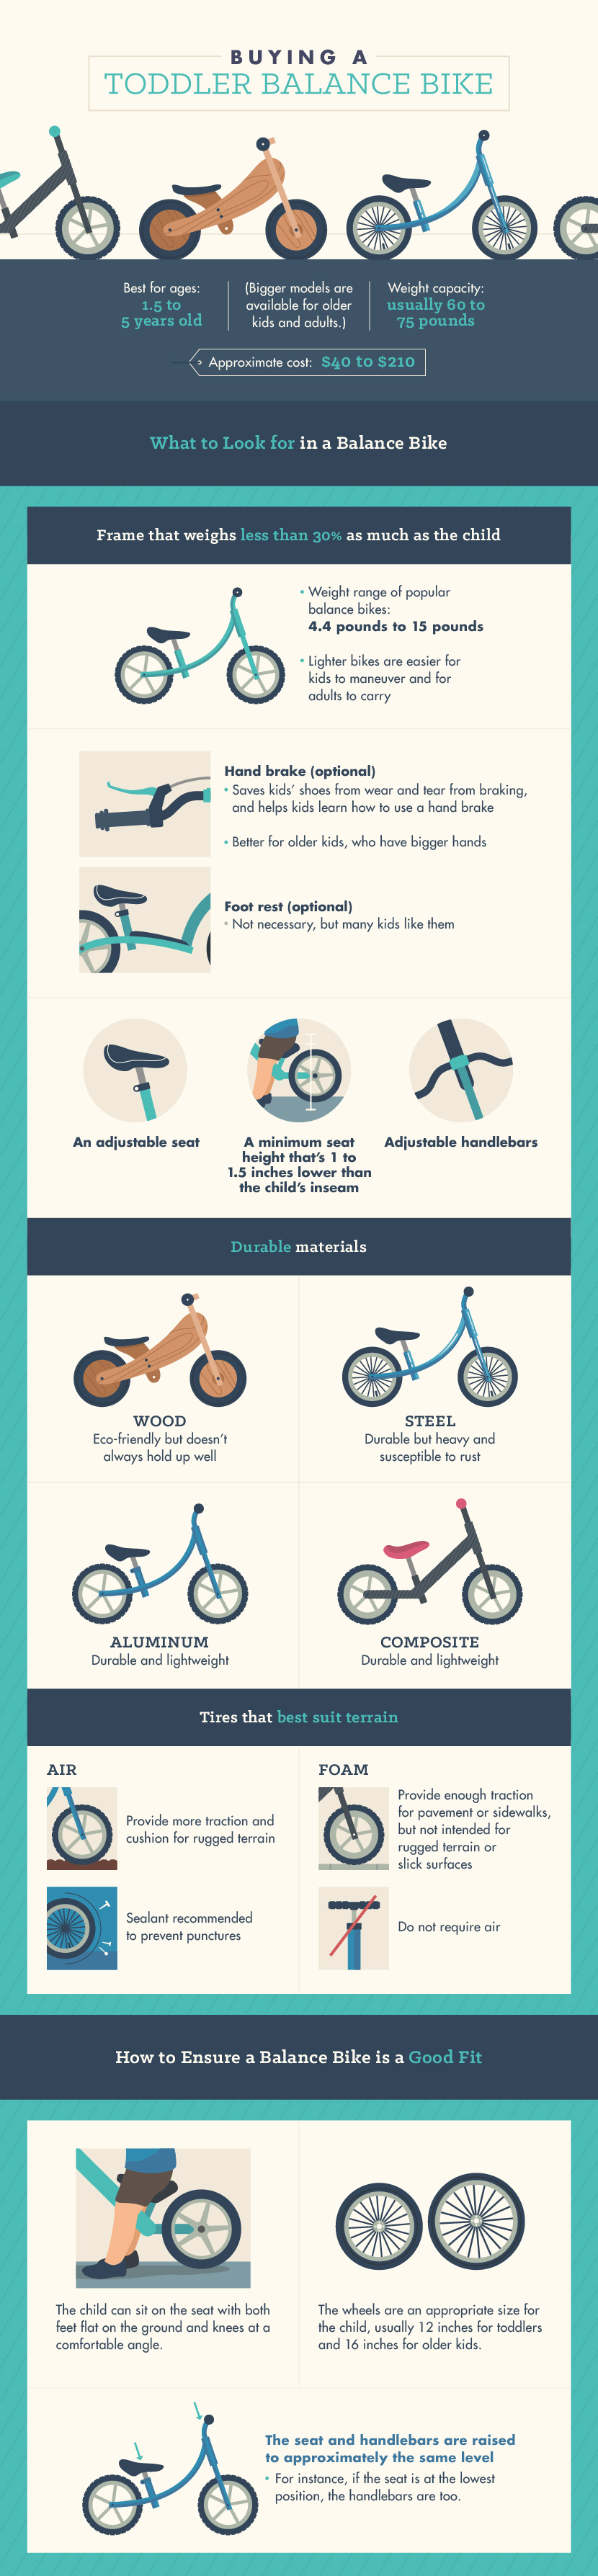 Choose the Right Bike for your Child: Buying a Toddler Balance Bike